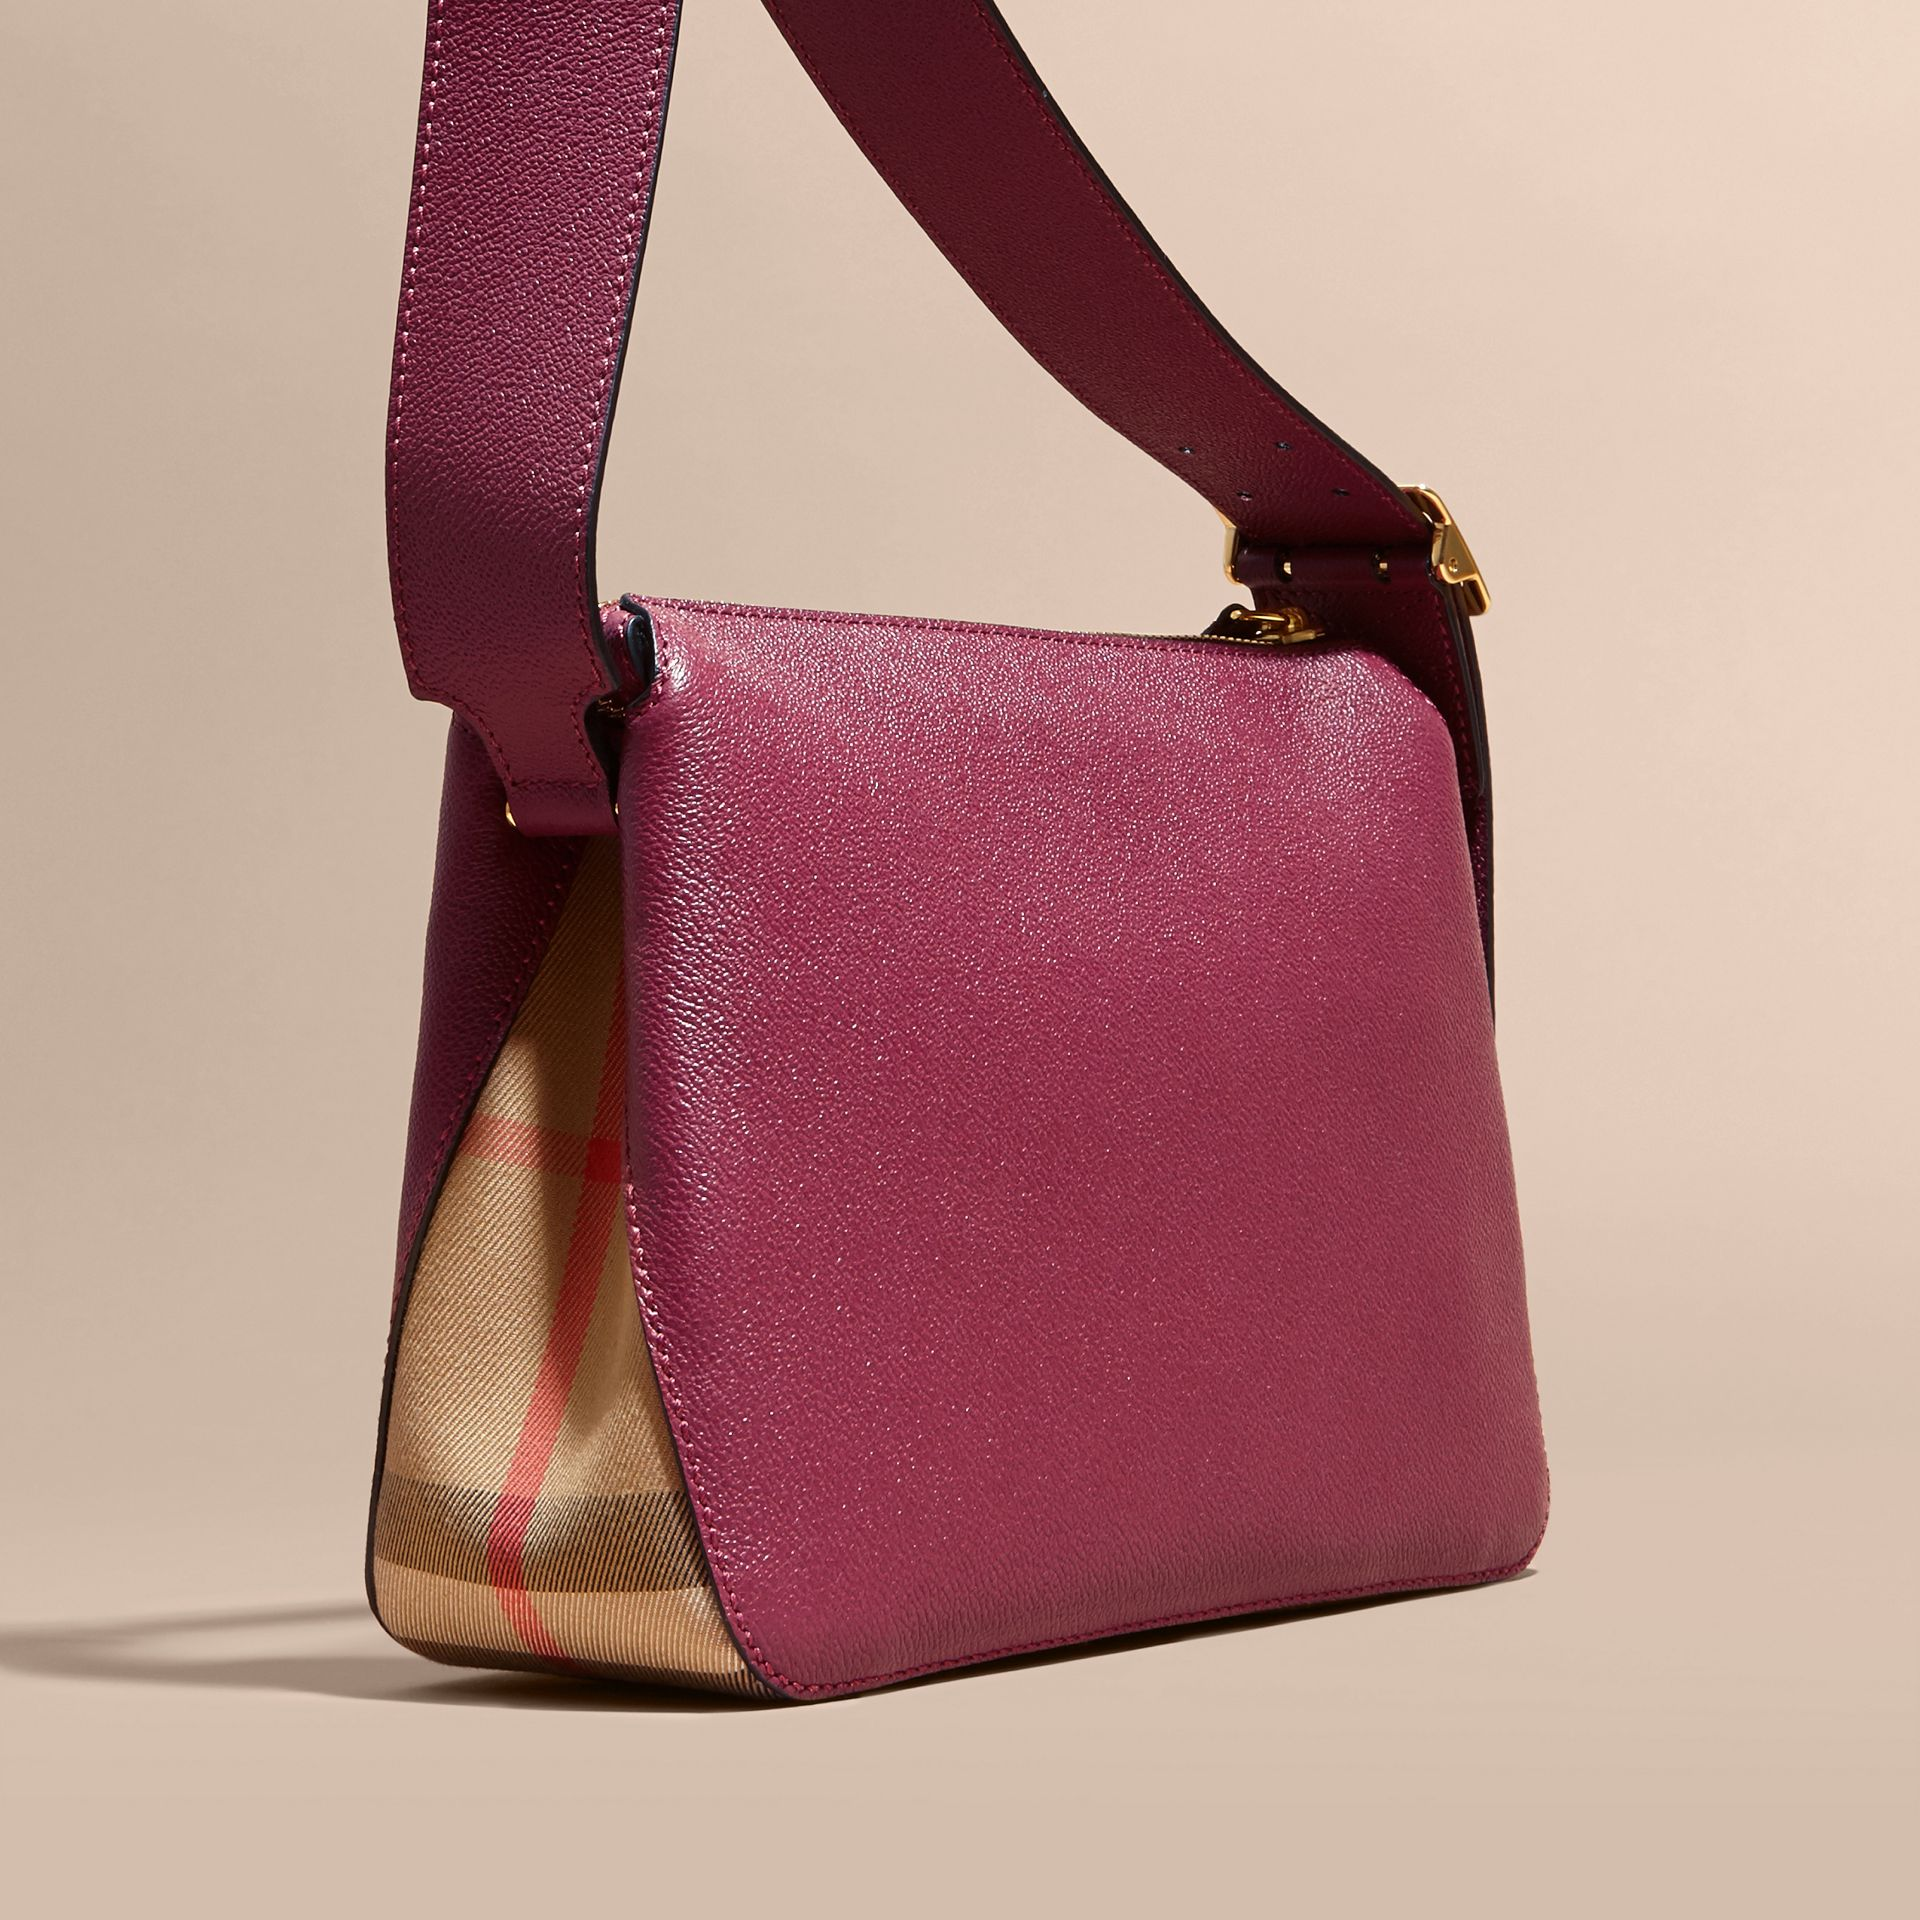 Buckle Detail Leather and House Check Crossbody Bag in Dark Plum - Women | Burberry - gallery image 3